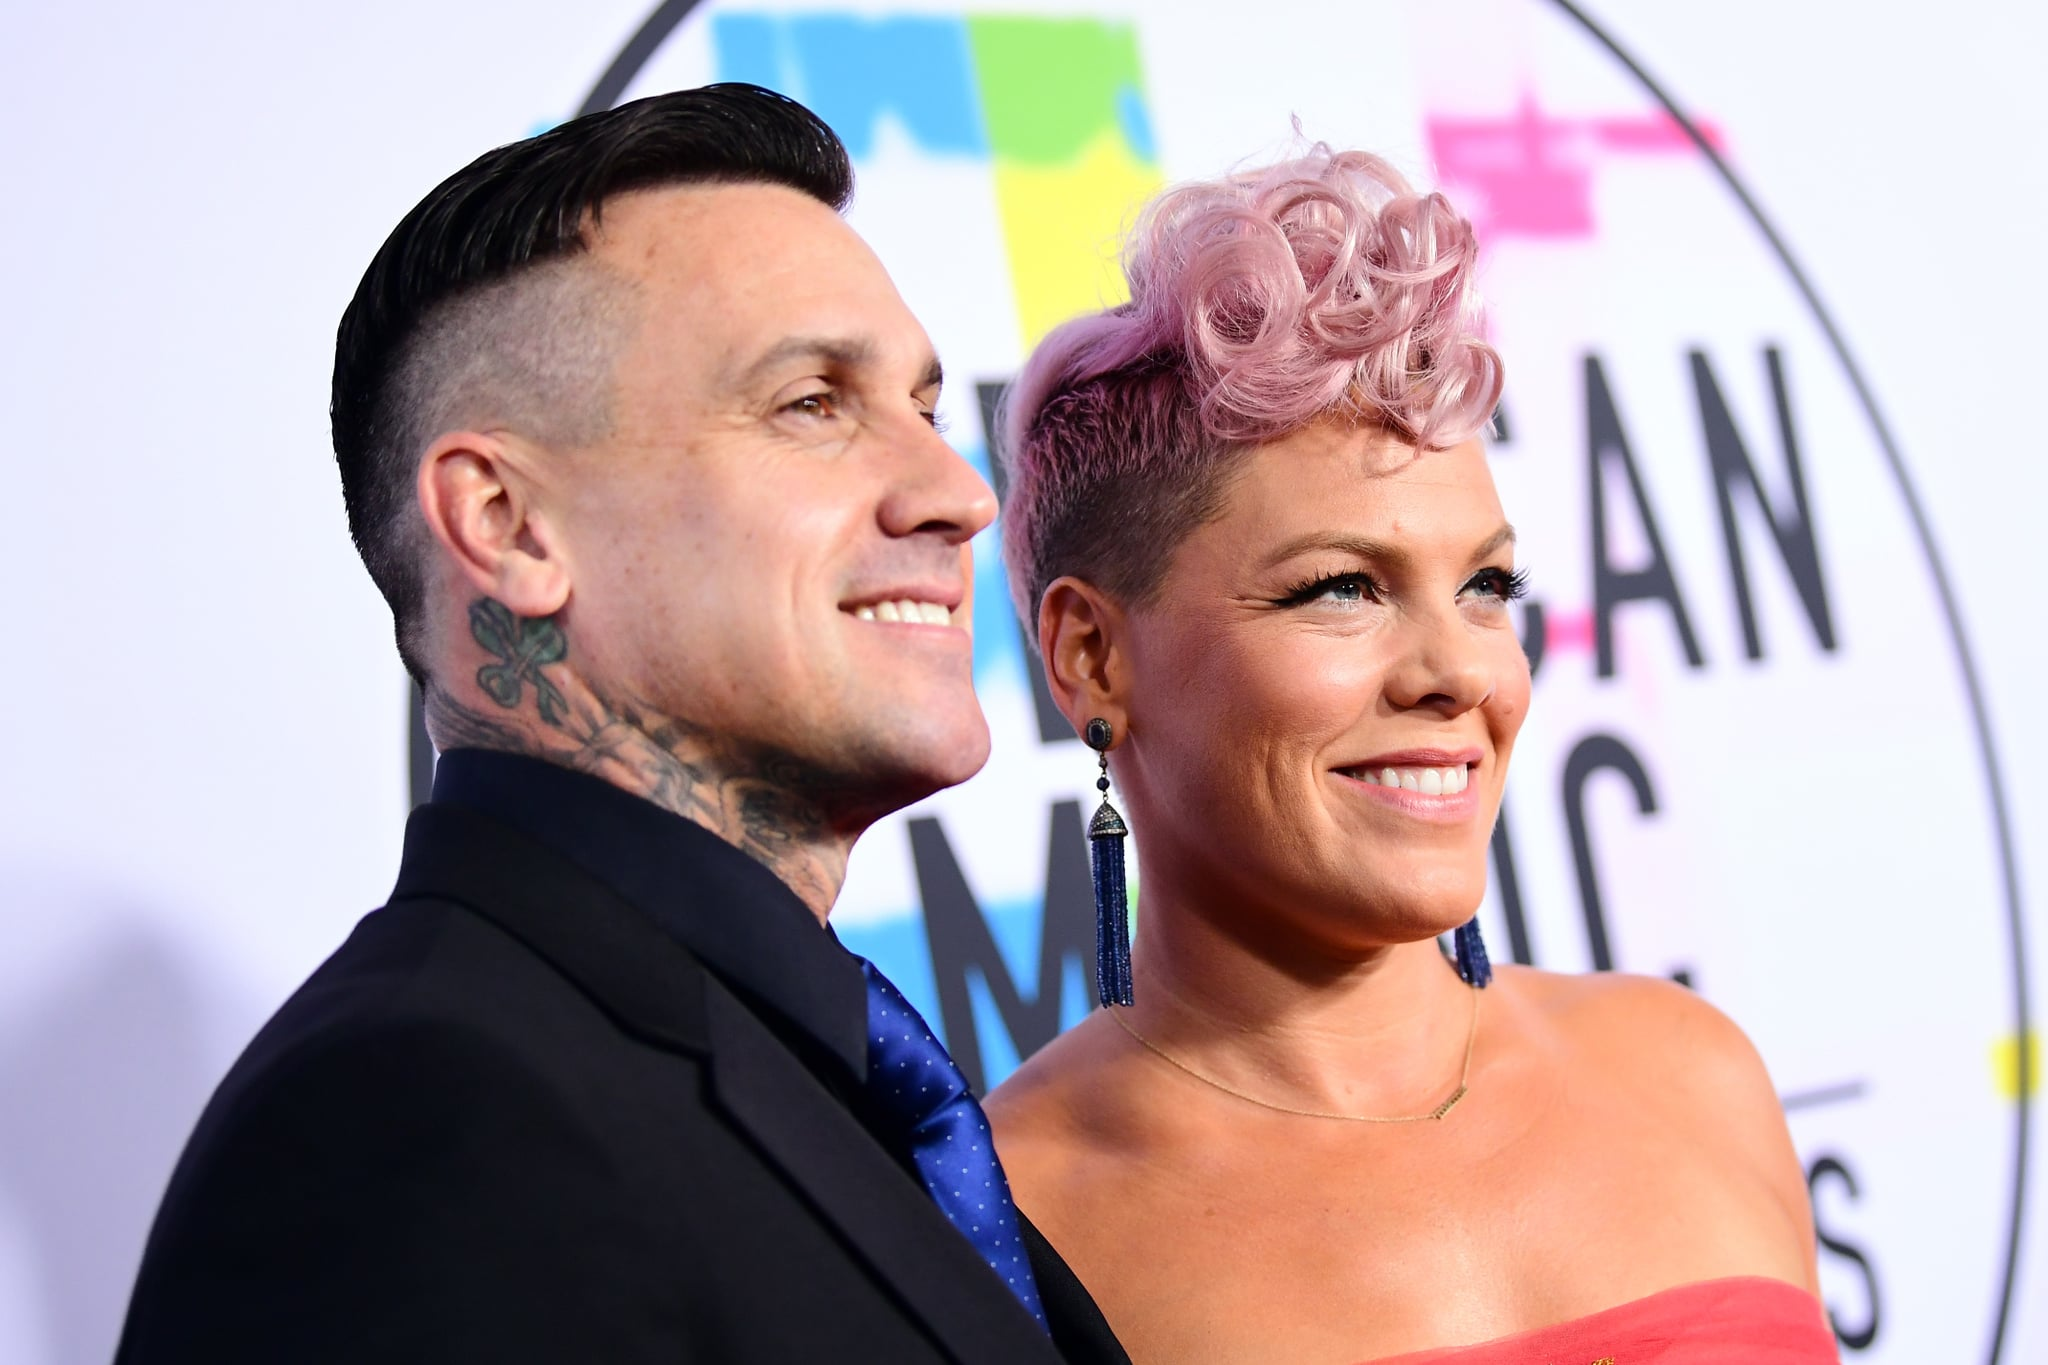 LOS ANGELES, CA - NOVEMBER 19:  Carey Hart (L) and Pink attend the 2017 American Music Awards at Microsoft Theatre on November 19, 2017 in Los Angeles, California.  (Photo by Emma McIntyre/AMA2017/Getty Images for dcp)